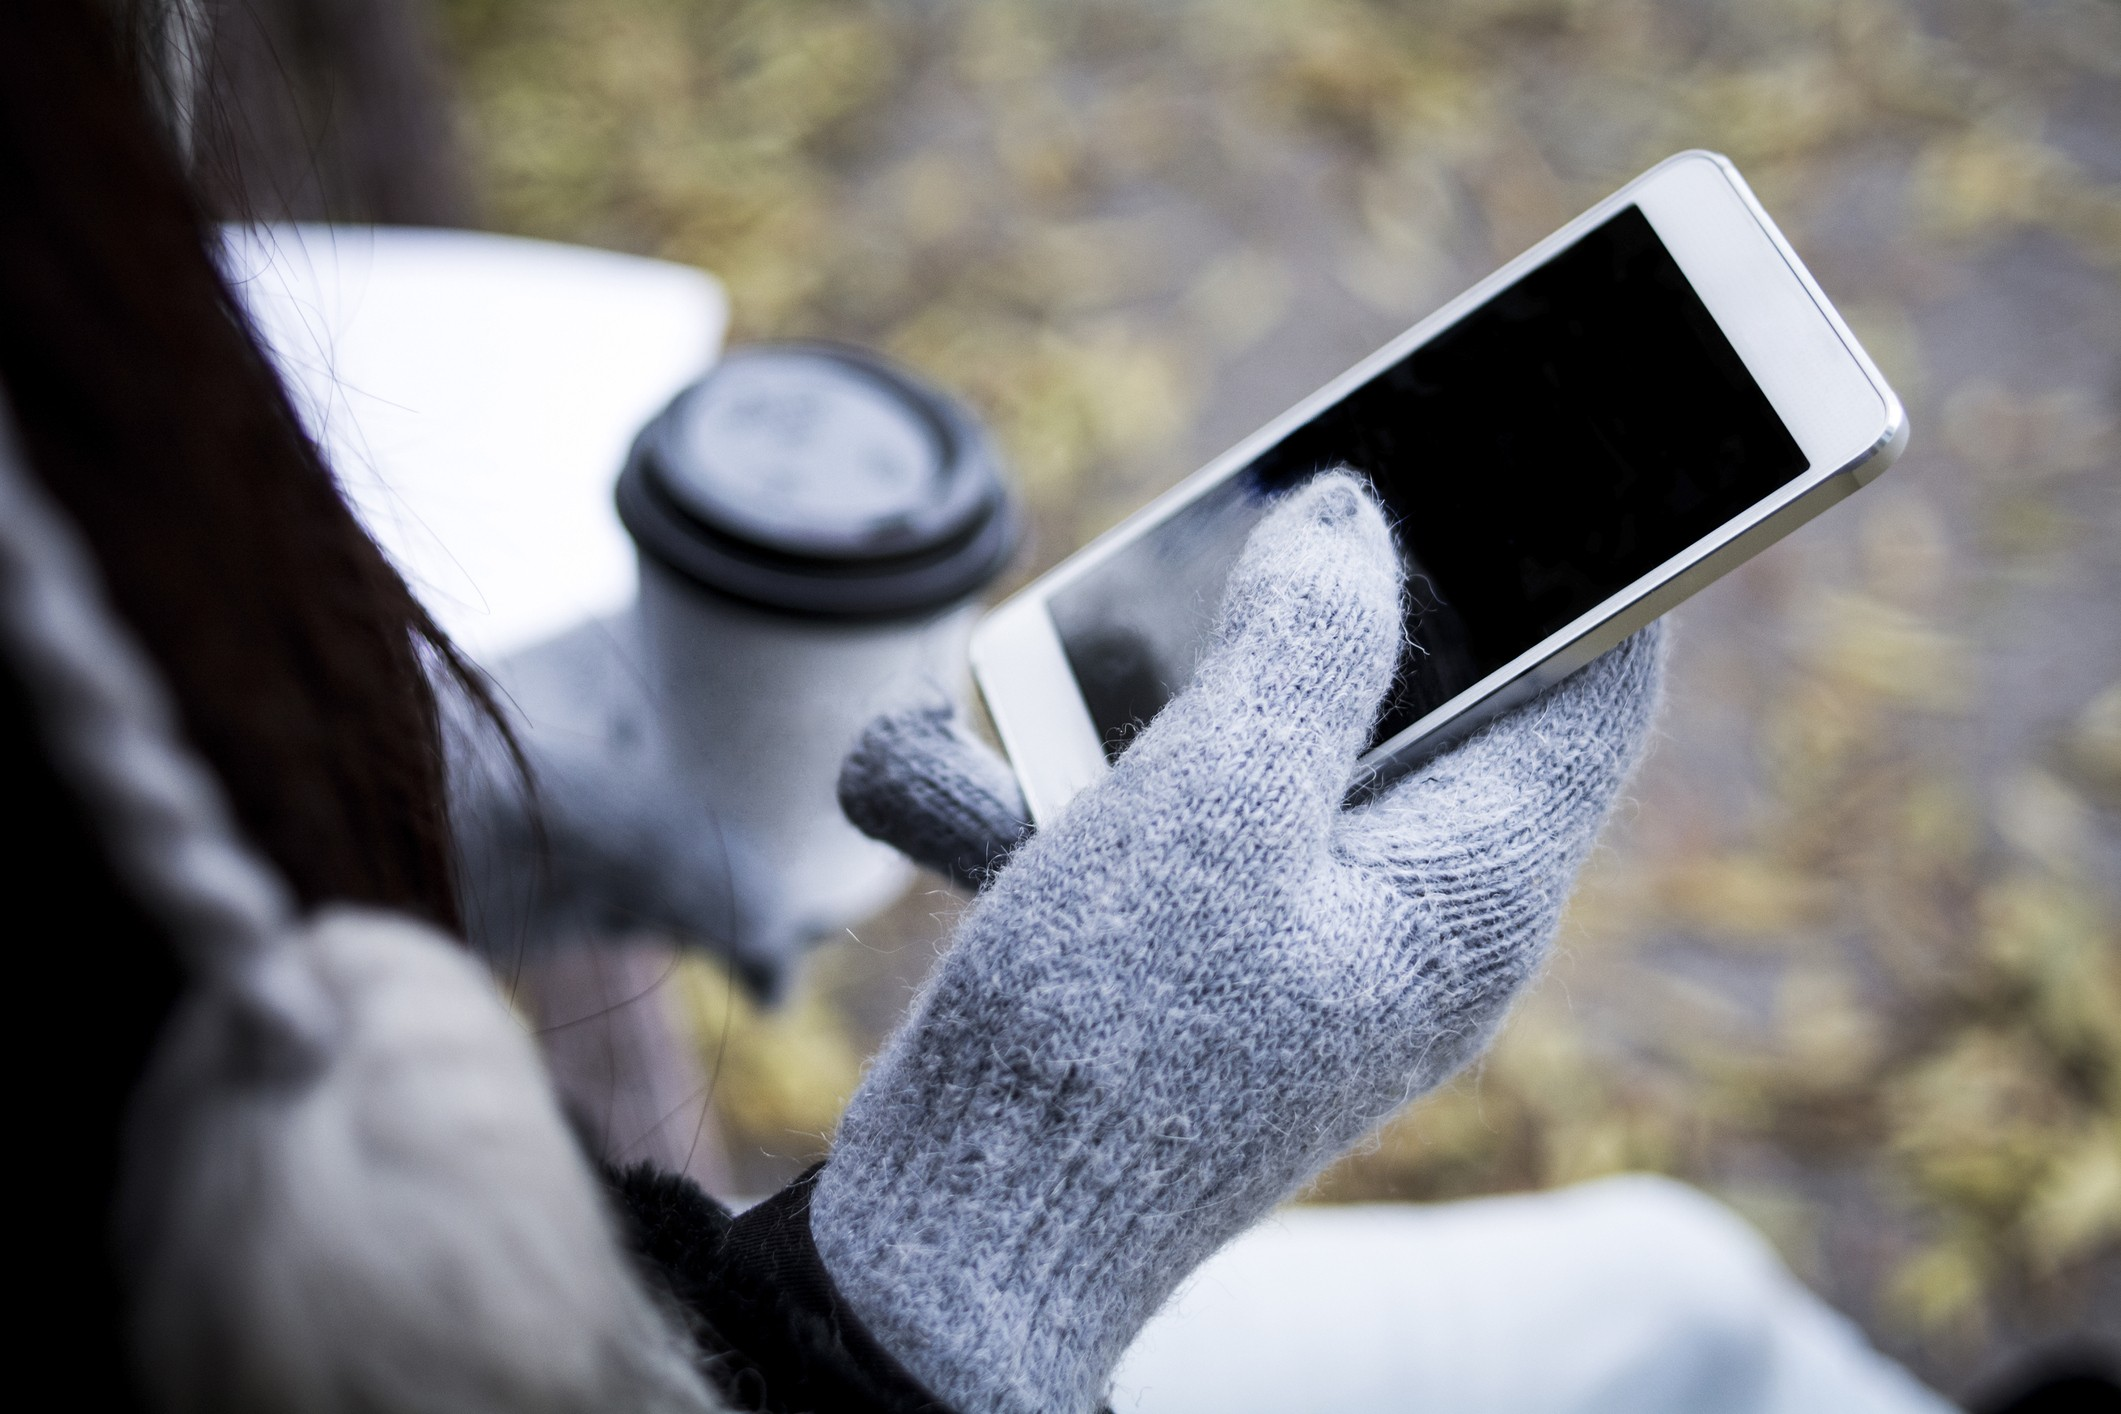 hand wearing glove holding smartphone